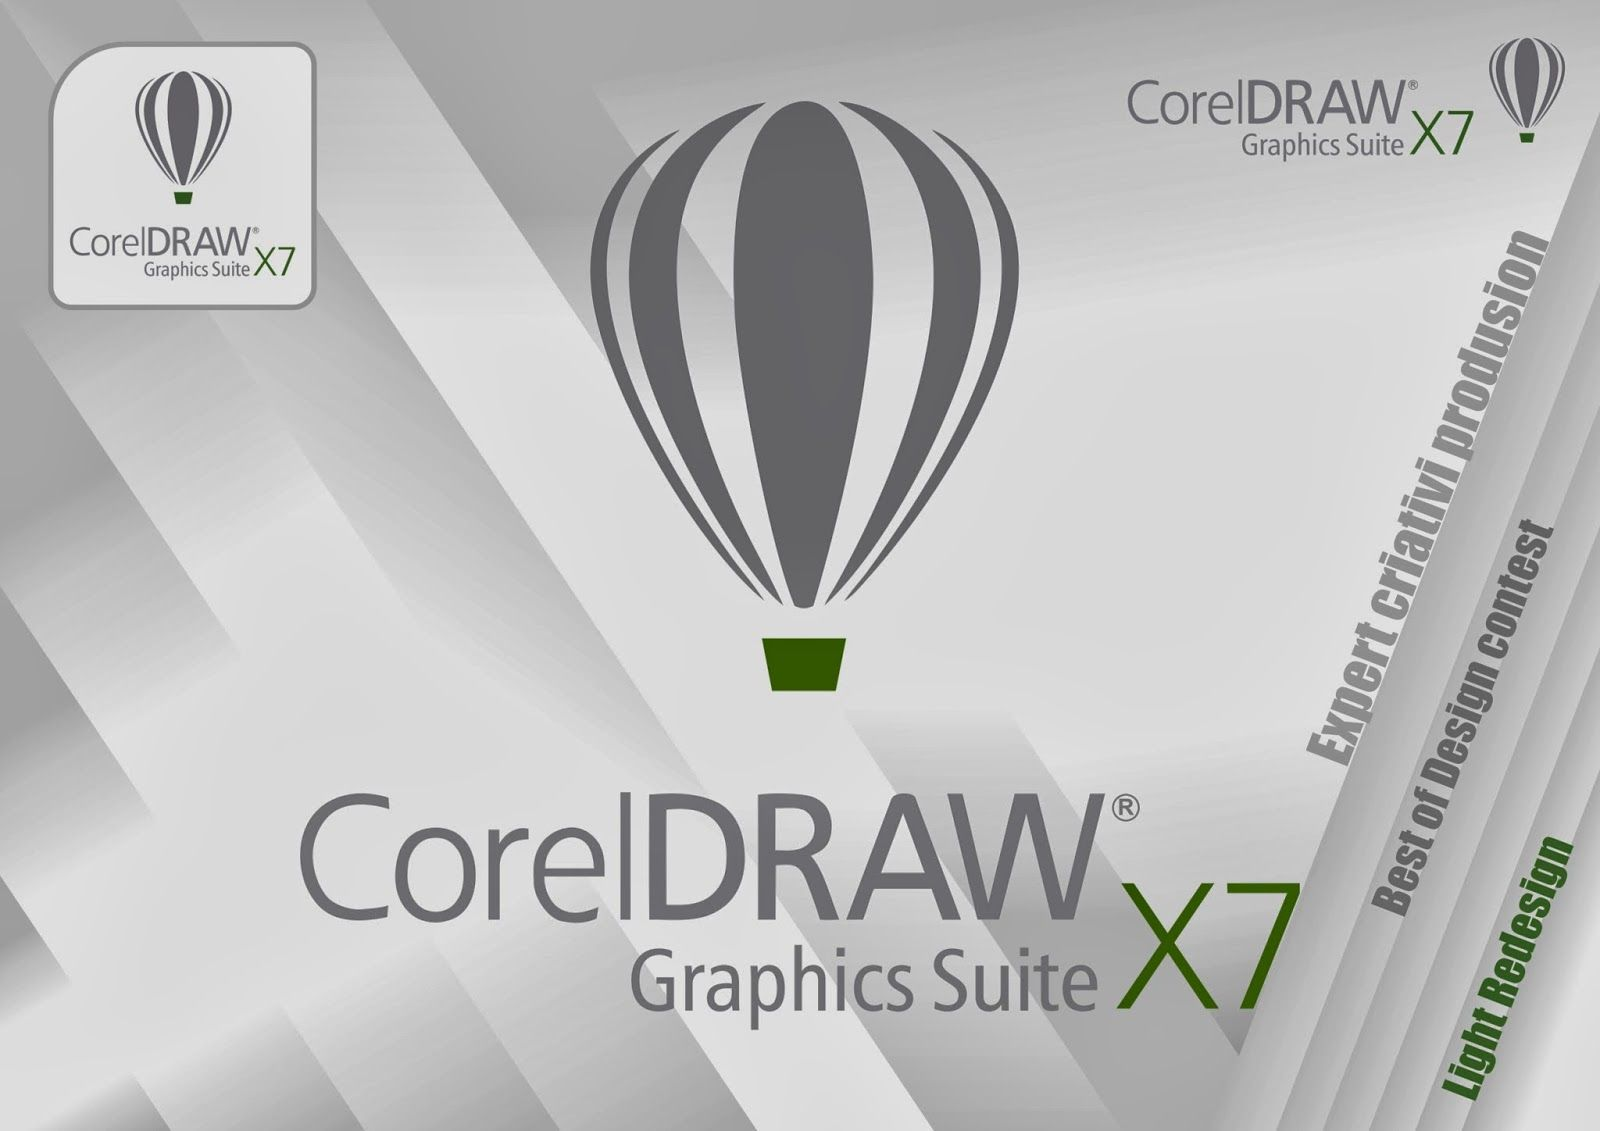 Corel draw version - Coral Draw X7 Serial Number Gives Us A Good Stability When Comparing The Expert And The